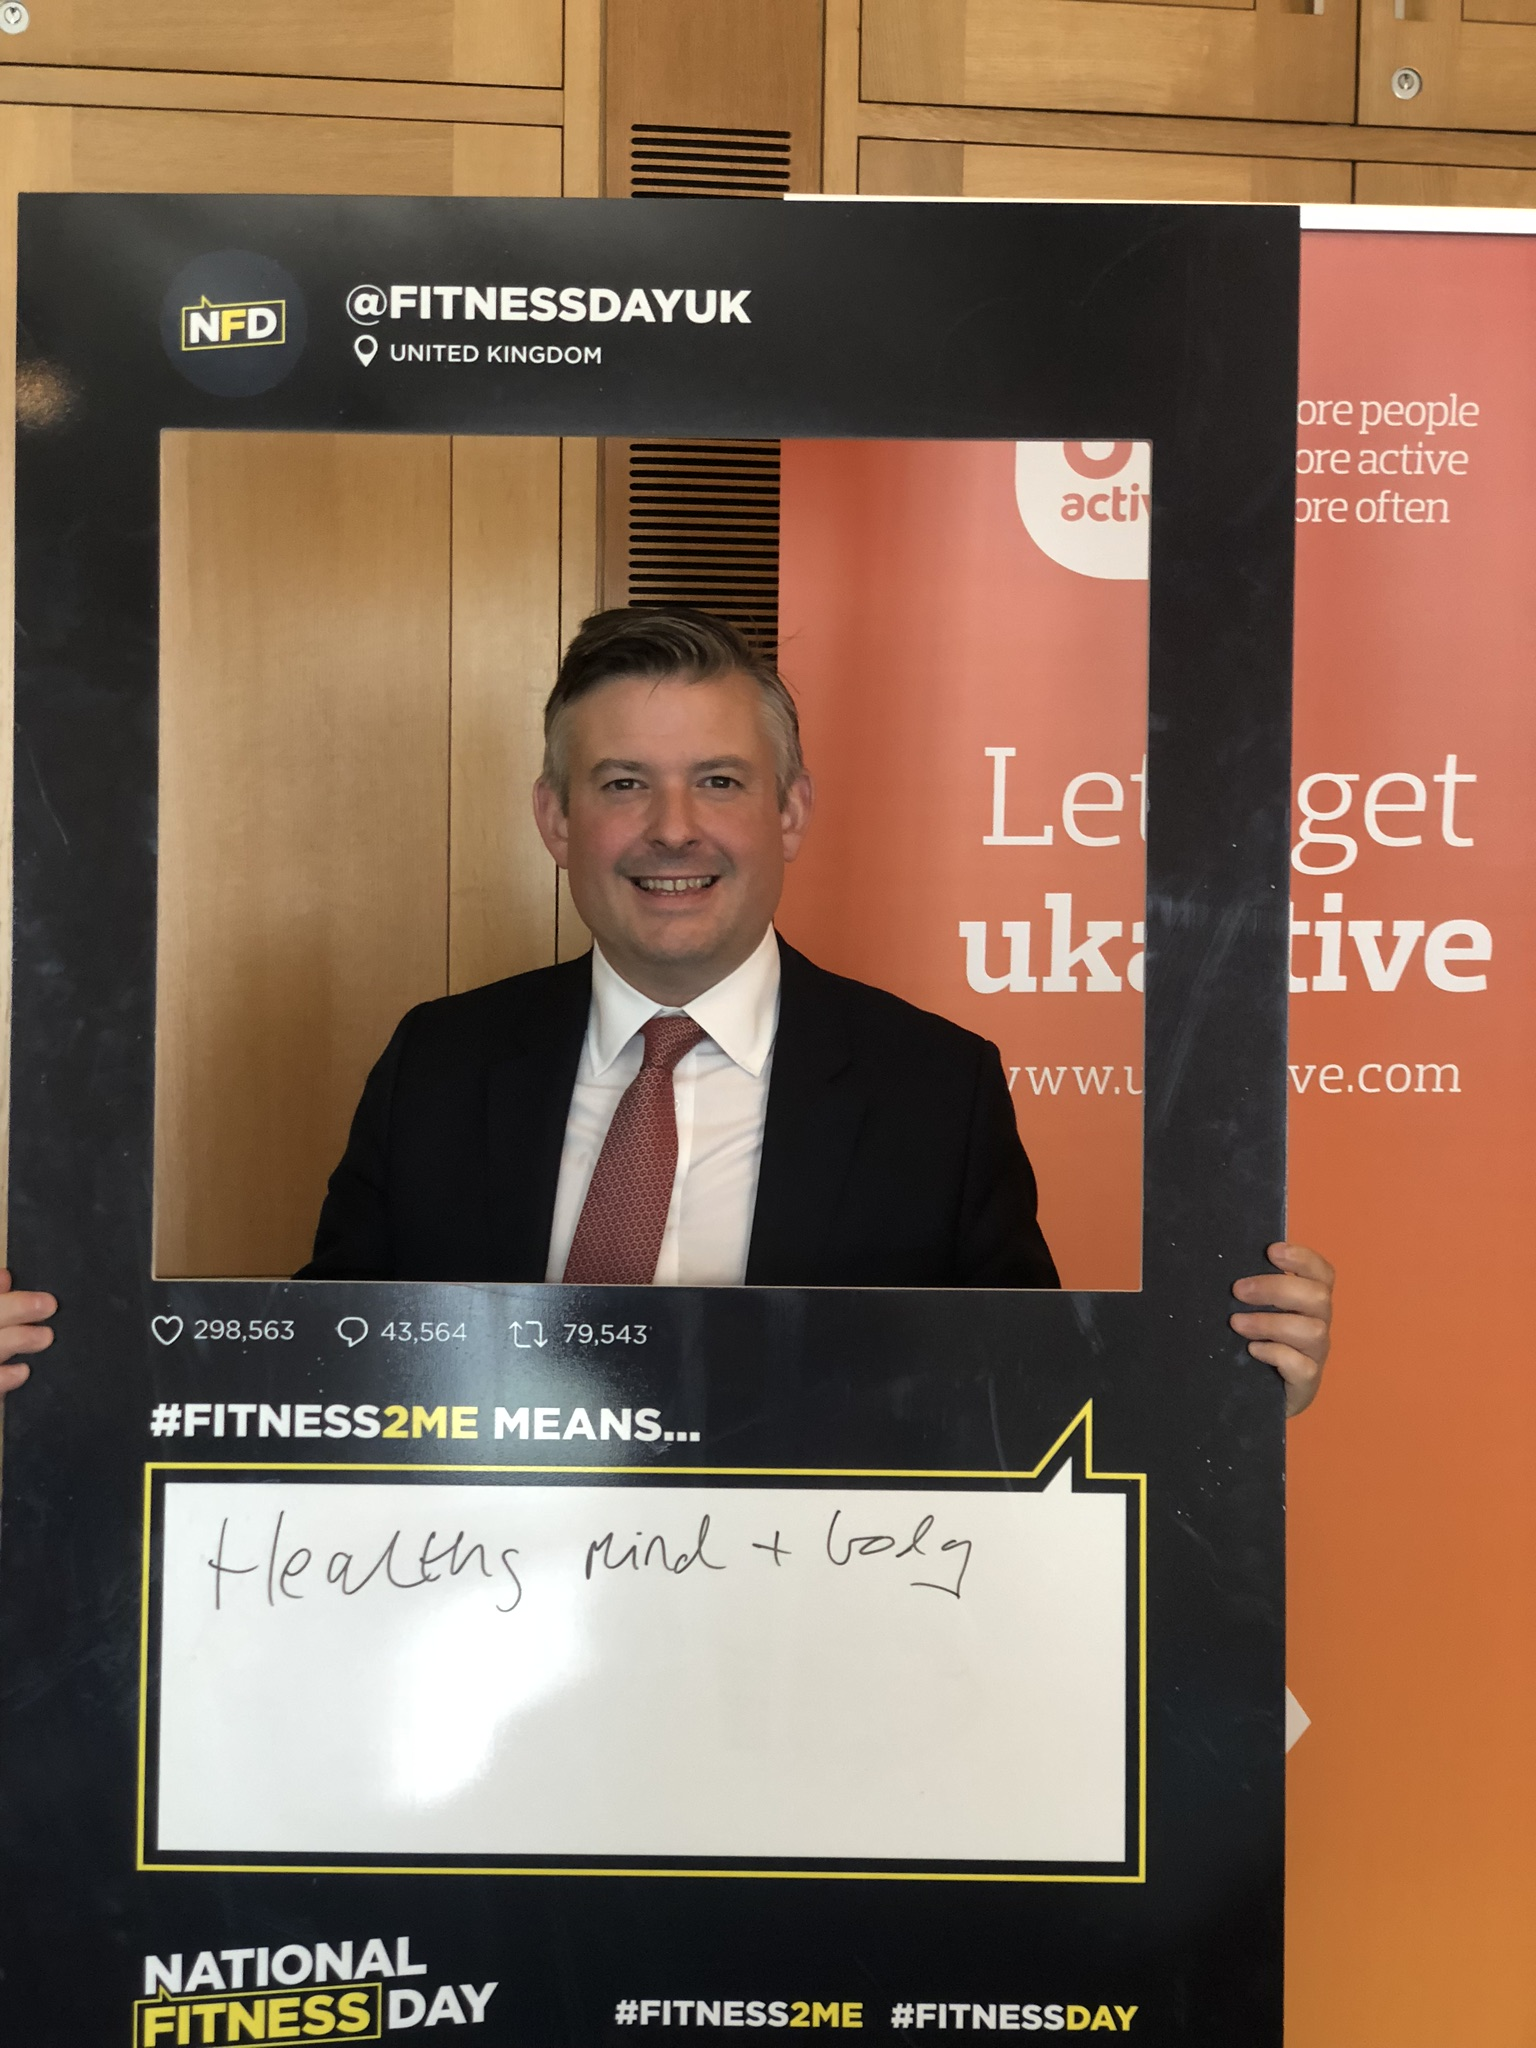 Jon is backing National Fitness Day which aims to make the 25th September the most active day of the year - Monday September 9 2019